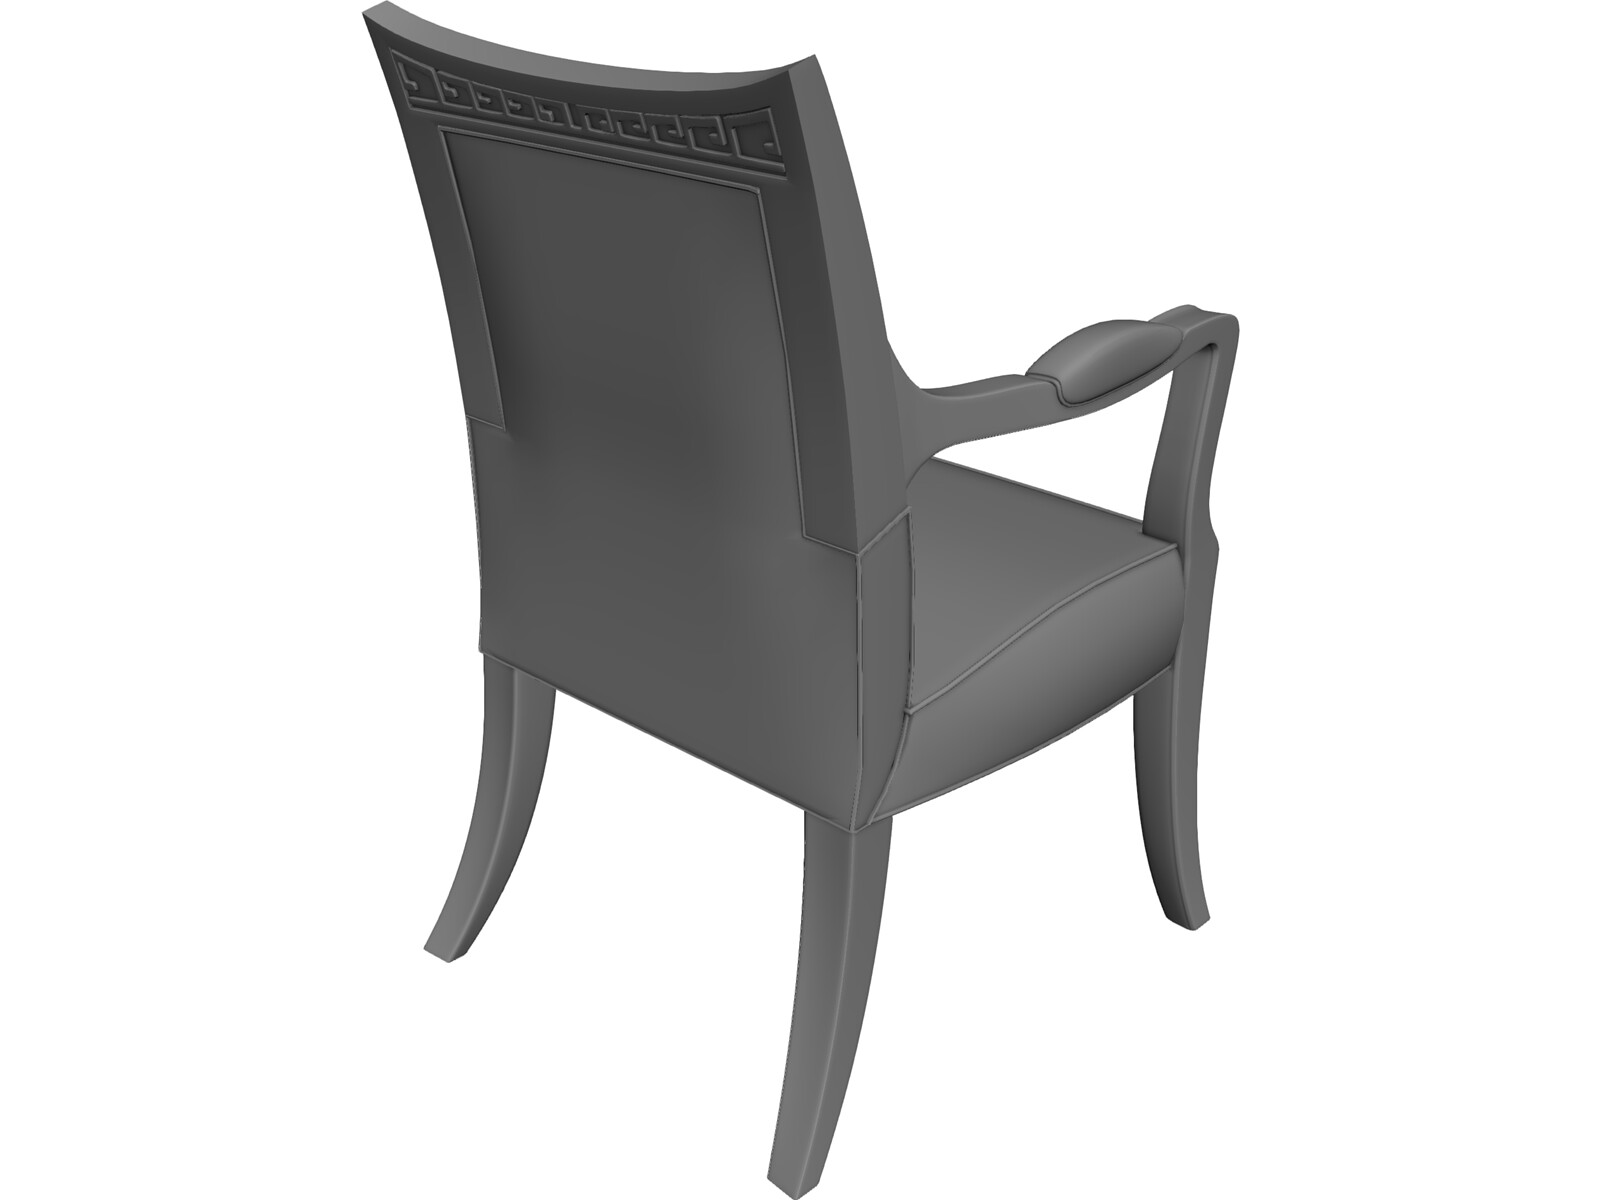 Chair 3d model 3d cad browser for Chair 3d model maya